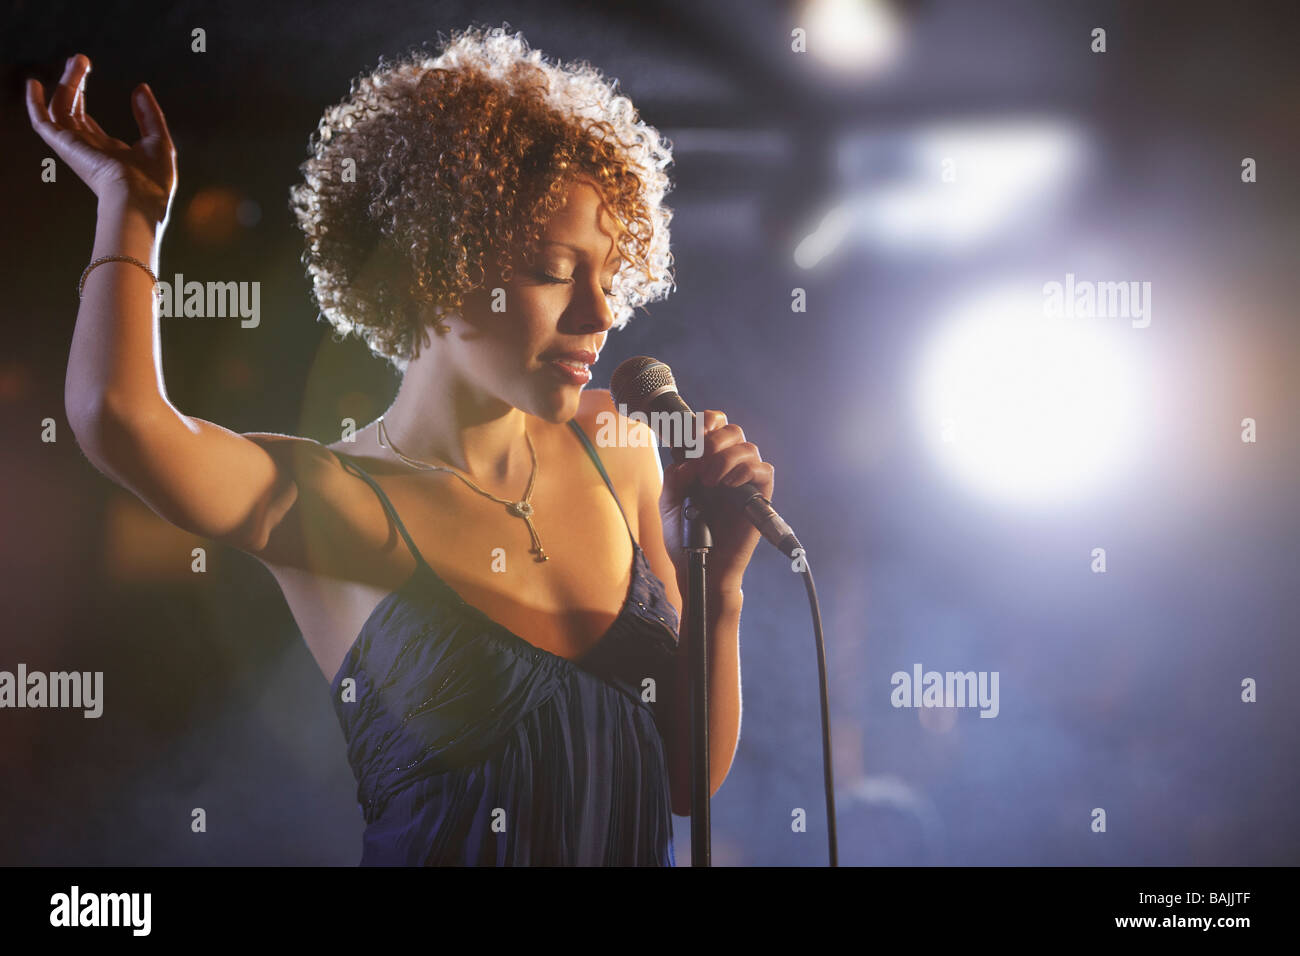 Jazz singer on stage, portrait - Stock Image